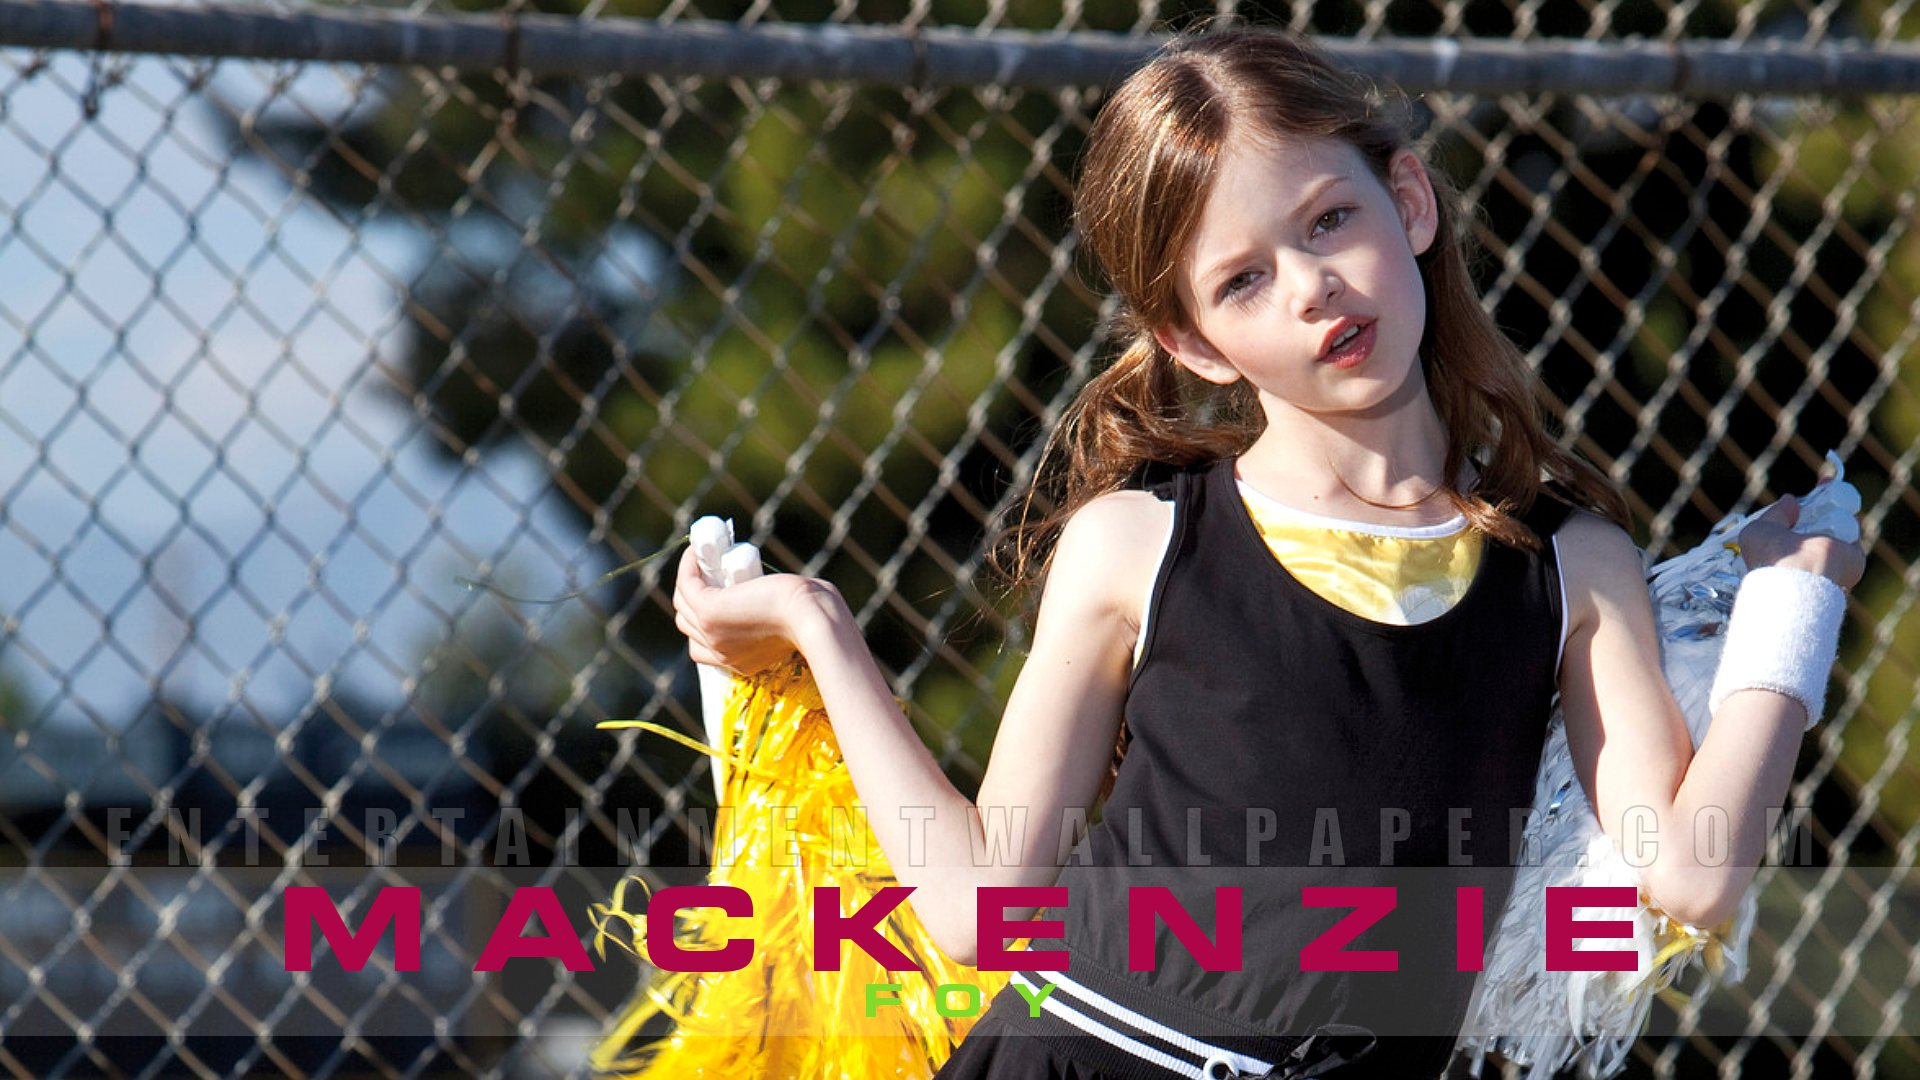 Mackenzie Foy Background Wallpapers 90 images in Collection Page 1 1920x1080